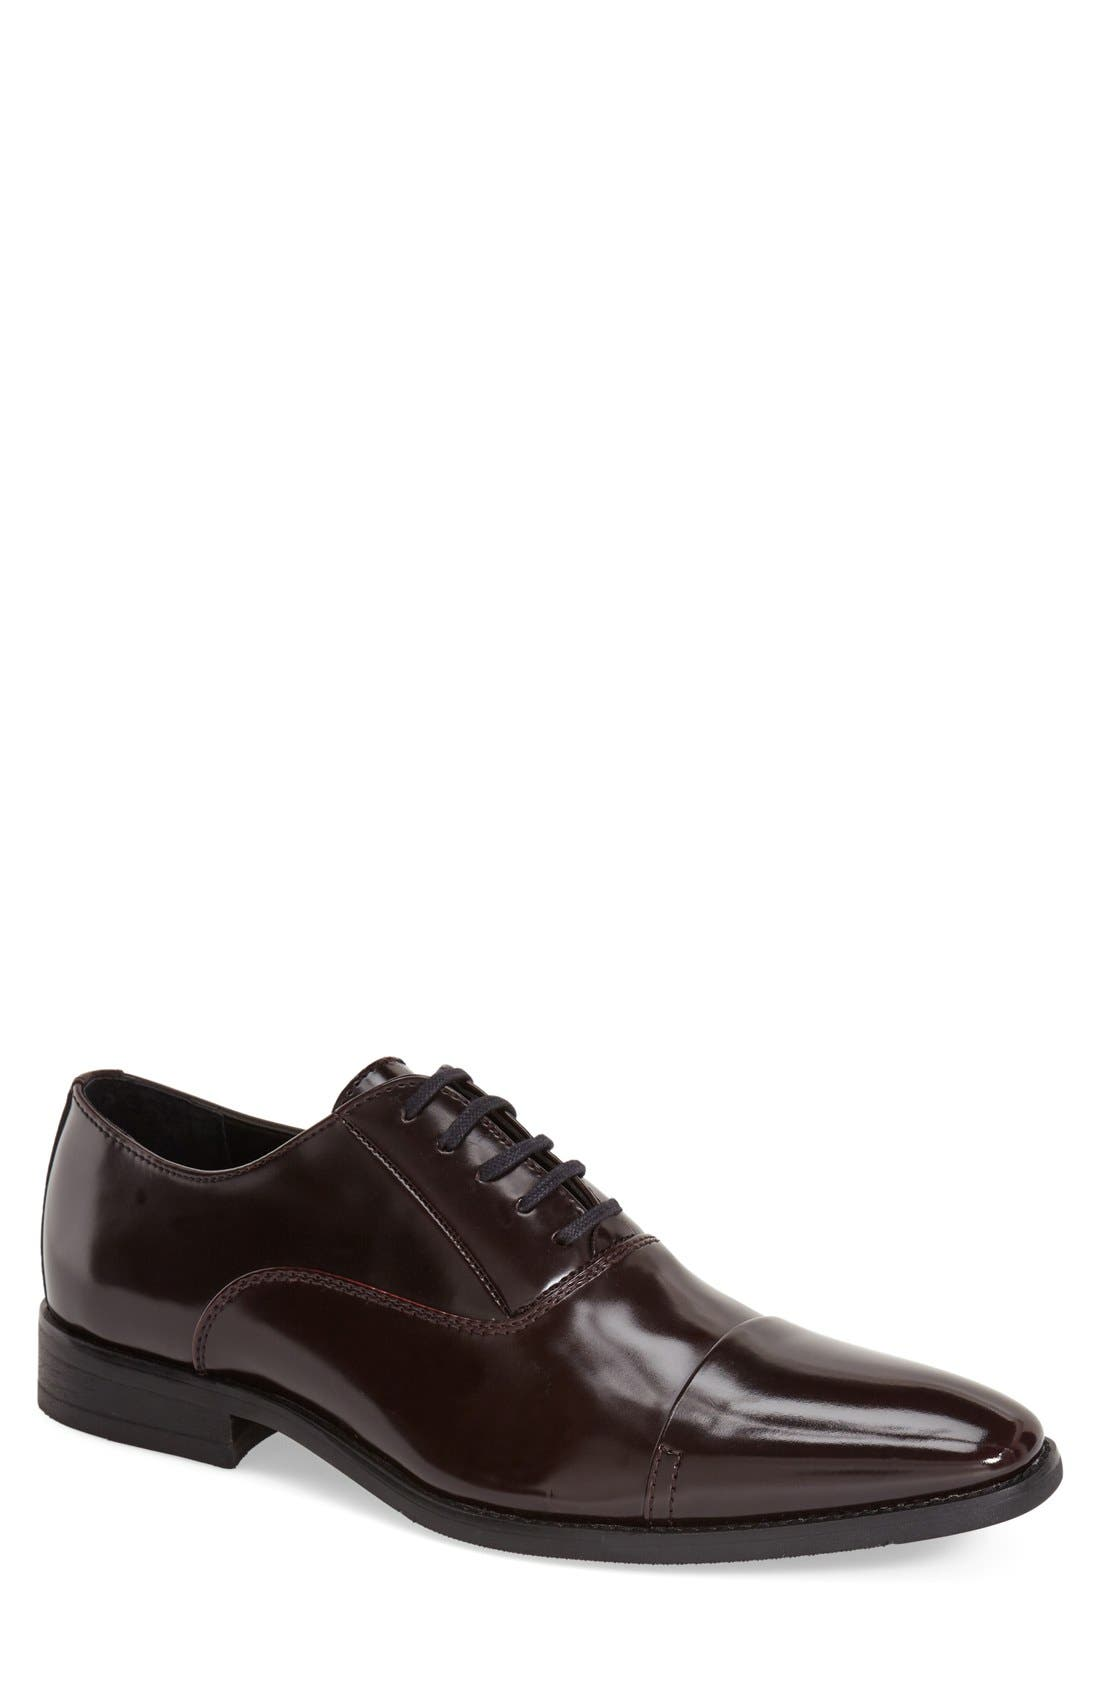 'Radley Box' Cap Toe Oxford,                             Main thumbnail 1, color,                             602